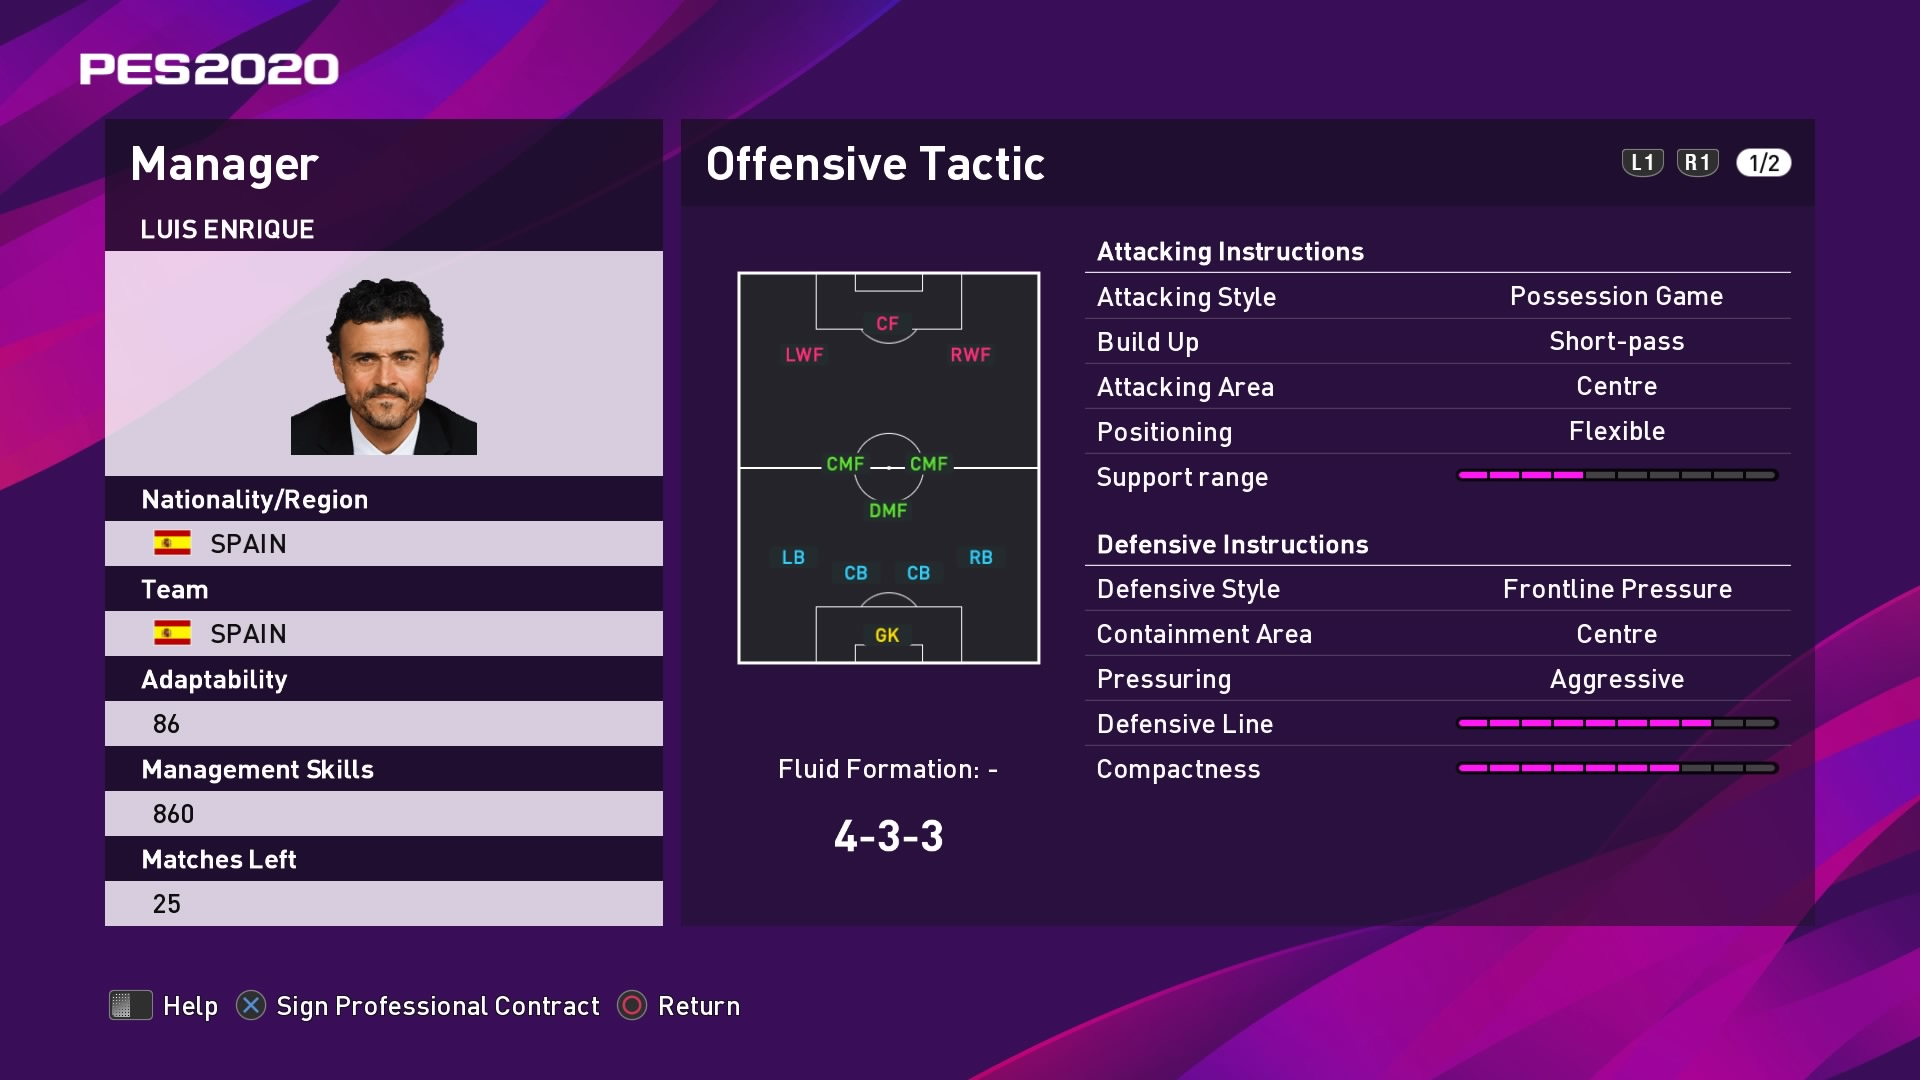 Luis Enrique Offensive Tactic in PES 2020 myClub